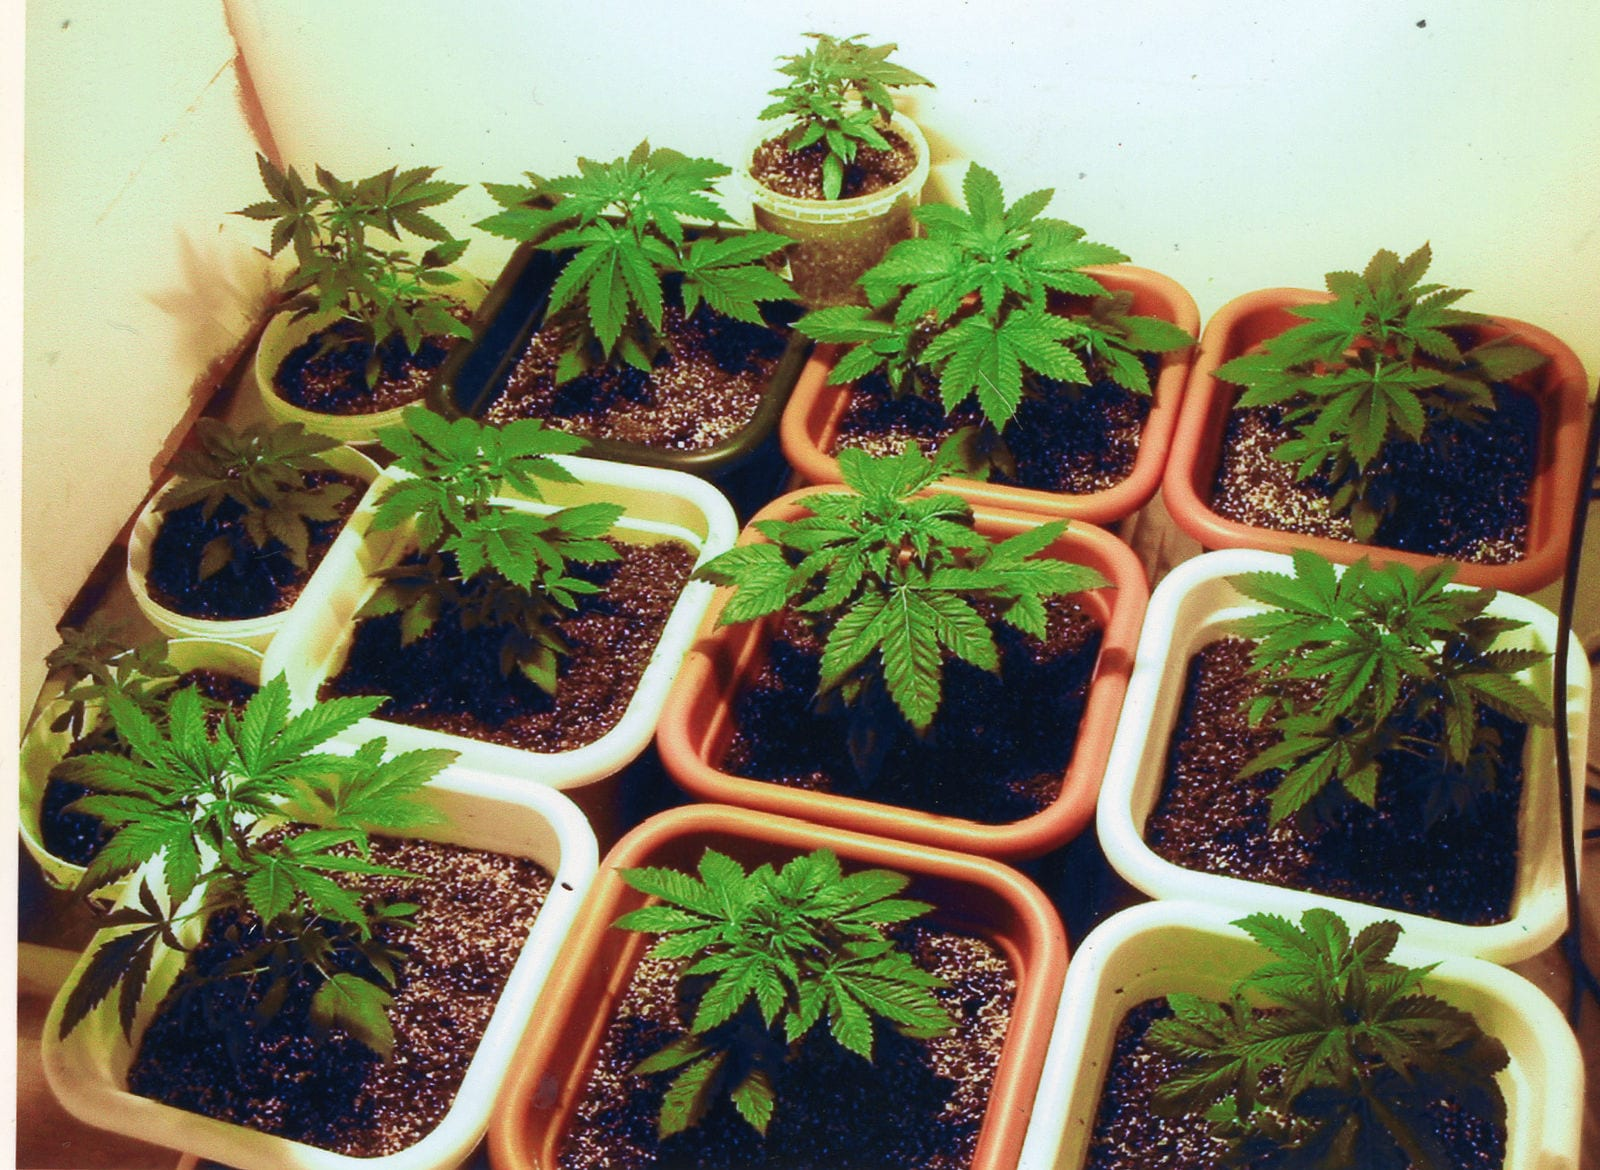 Fighting for the right to grow cannabis in your own backyard